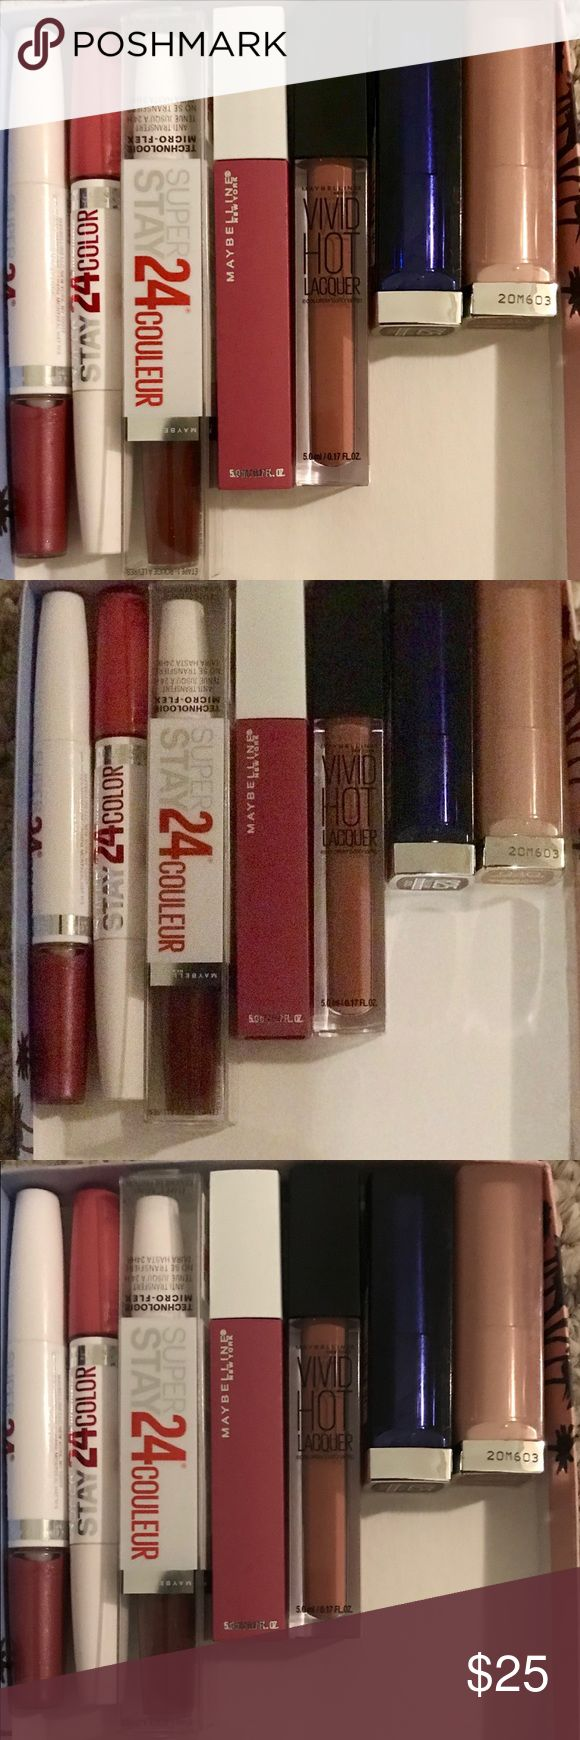 Maybelline's Super Stay Couleur, Vivid Lacquer Ect Some of Maybelline's BEST lip products  Three 24 Hour Super Stay Lip Couleur with micro flex technology  One Vivid HOT Lacquer  Two Lipsticks  One Maybelline Matte Lip Lacquer If interested can give exact colors Maybelline Makeup Lipstick